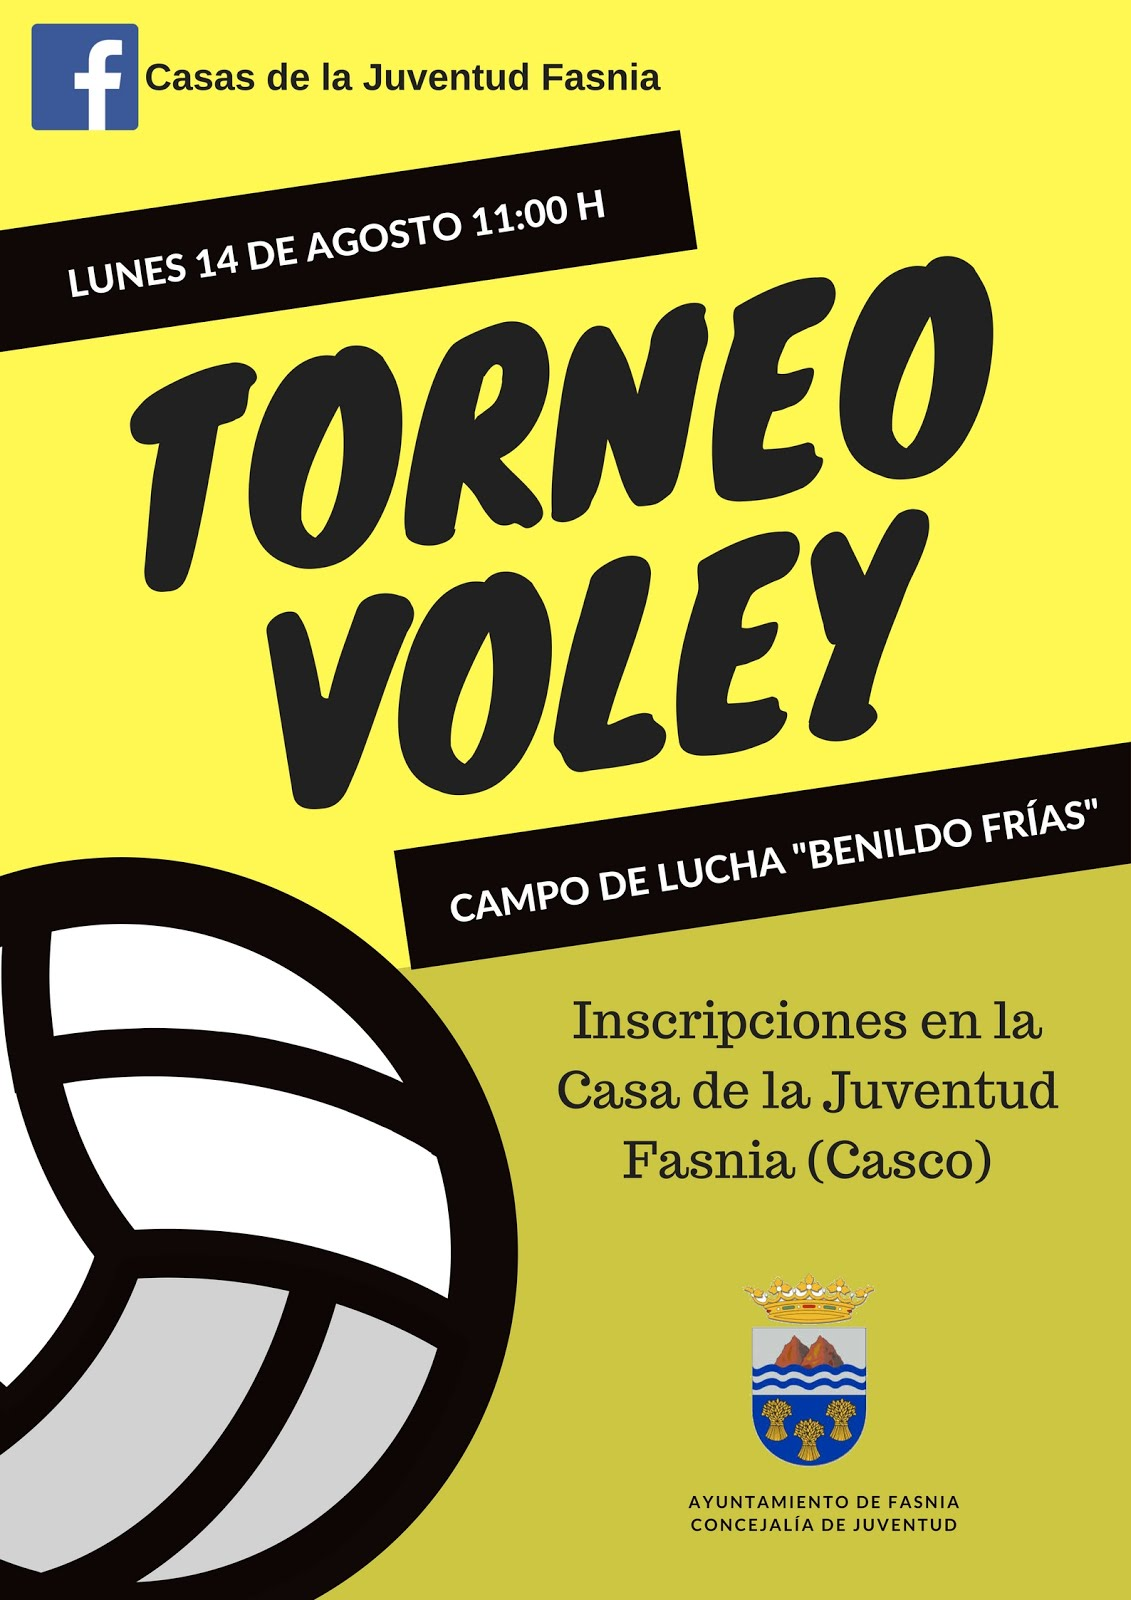 TORNEO VOLEY